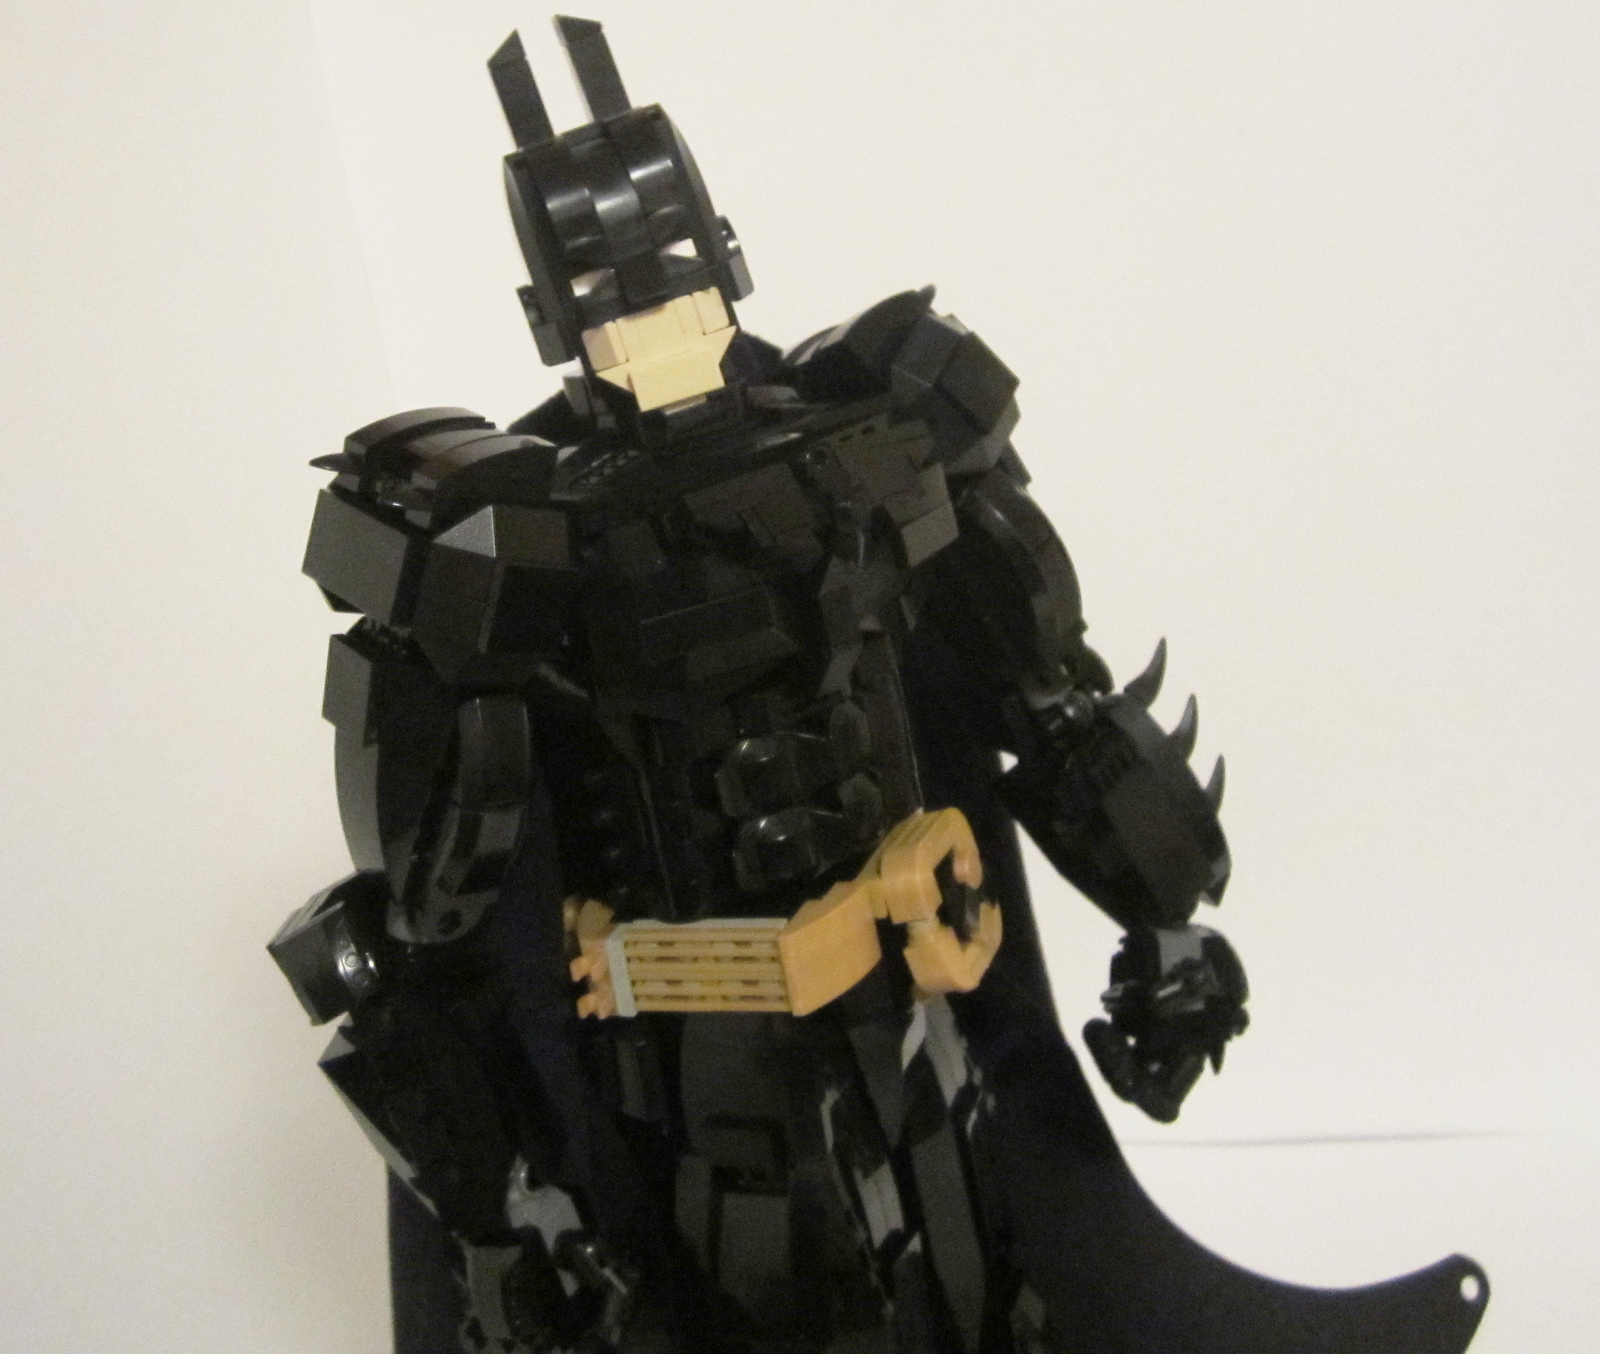 lego batman fully posable action figure is a must have gizmodo uk. Black Bedroom Furniture Sets. Home Design Ideas